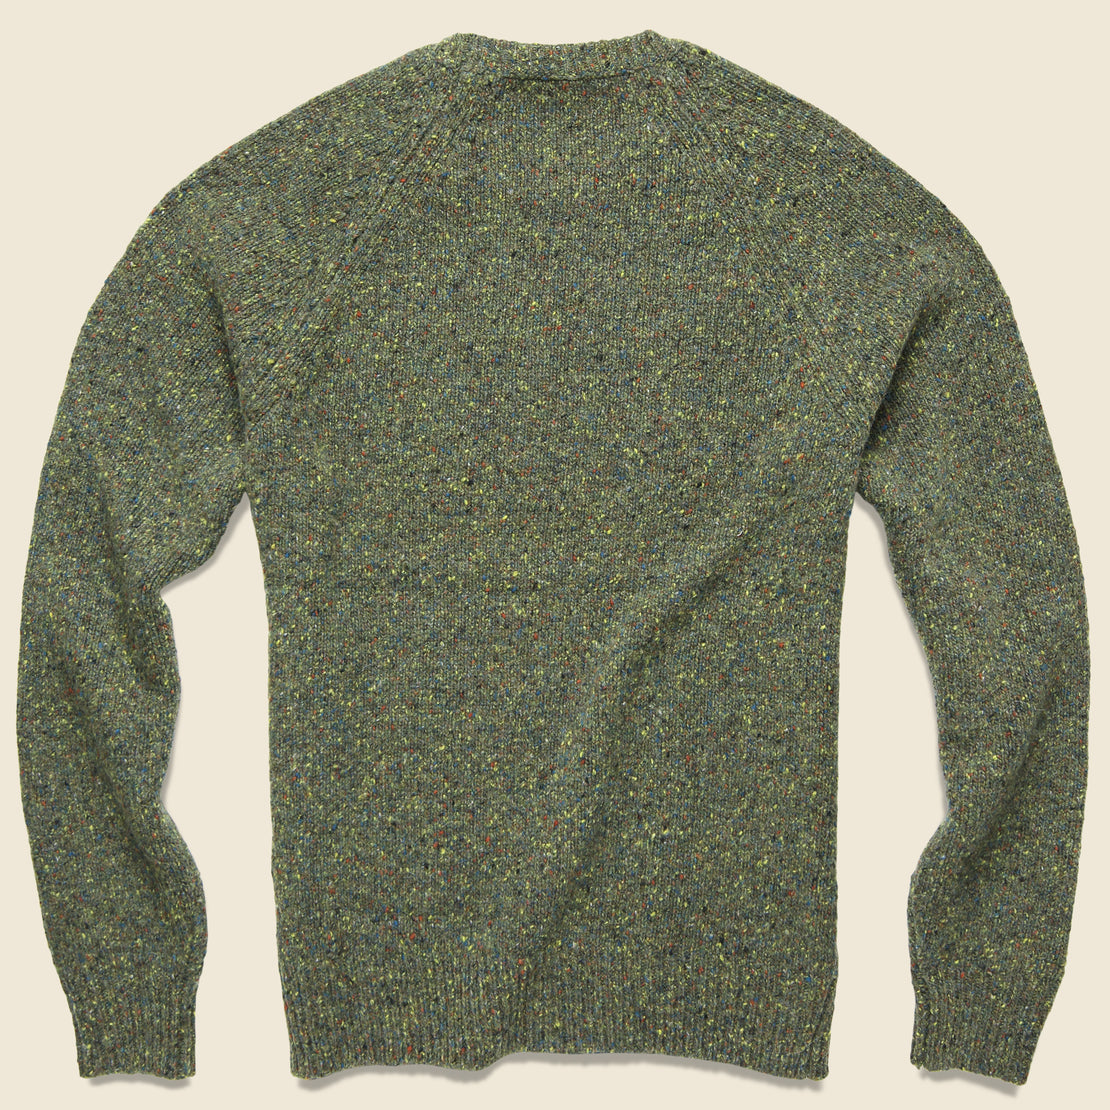 Alpaca Donegal Crew Sweater - Riverbank Green